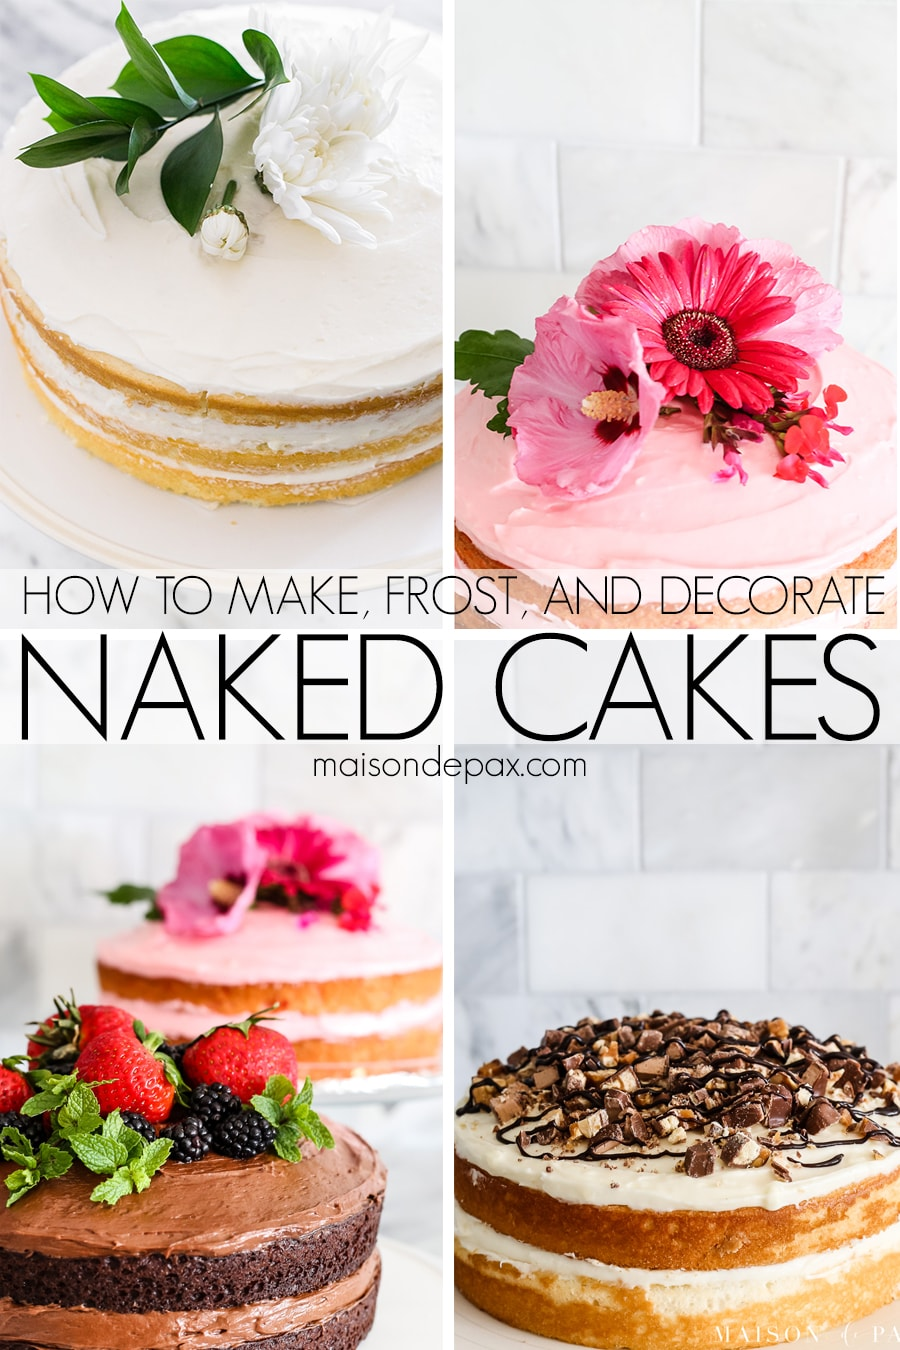 How to make, frost, and decorate naked cakes! Tips and tricks for an easy, beautiful naked cake. #nakedcake #nakedcakerecipe #cakefrosting #howtofrost #cakerecipe #creamcheesefrosting #cakedecorating #whitecake #chocolatecake #strawberrycake